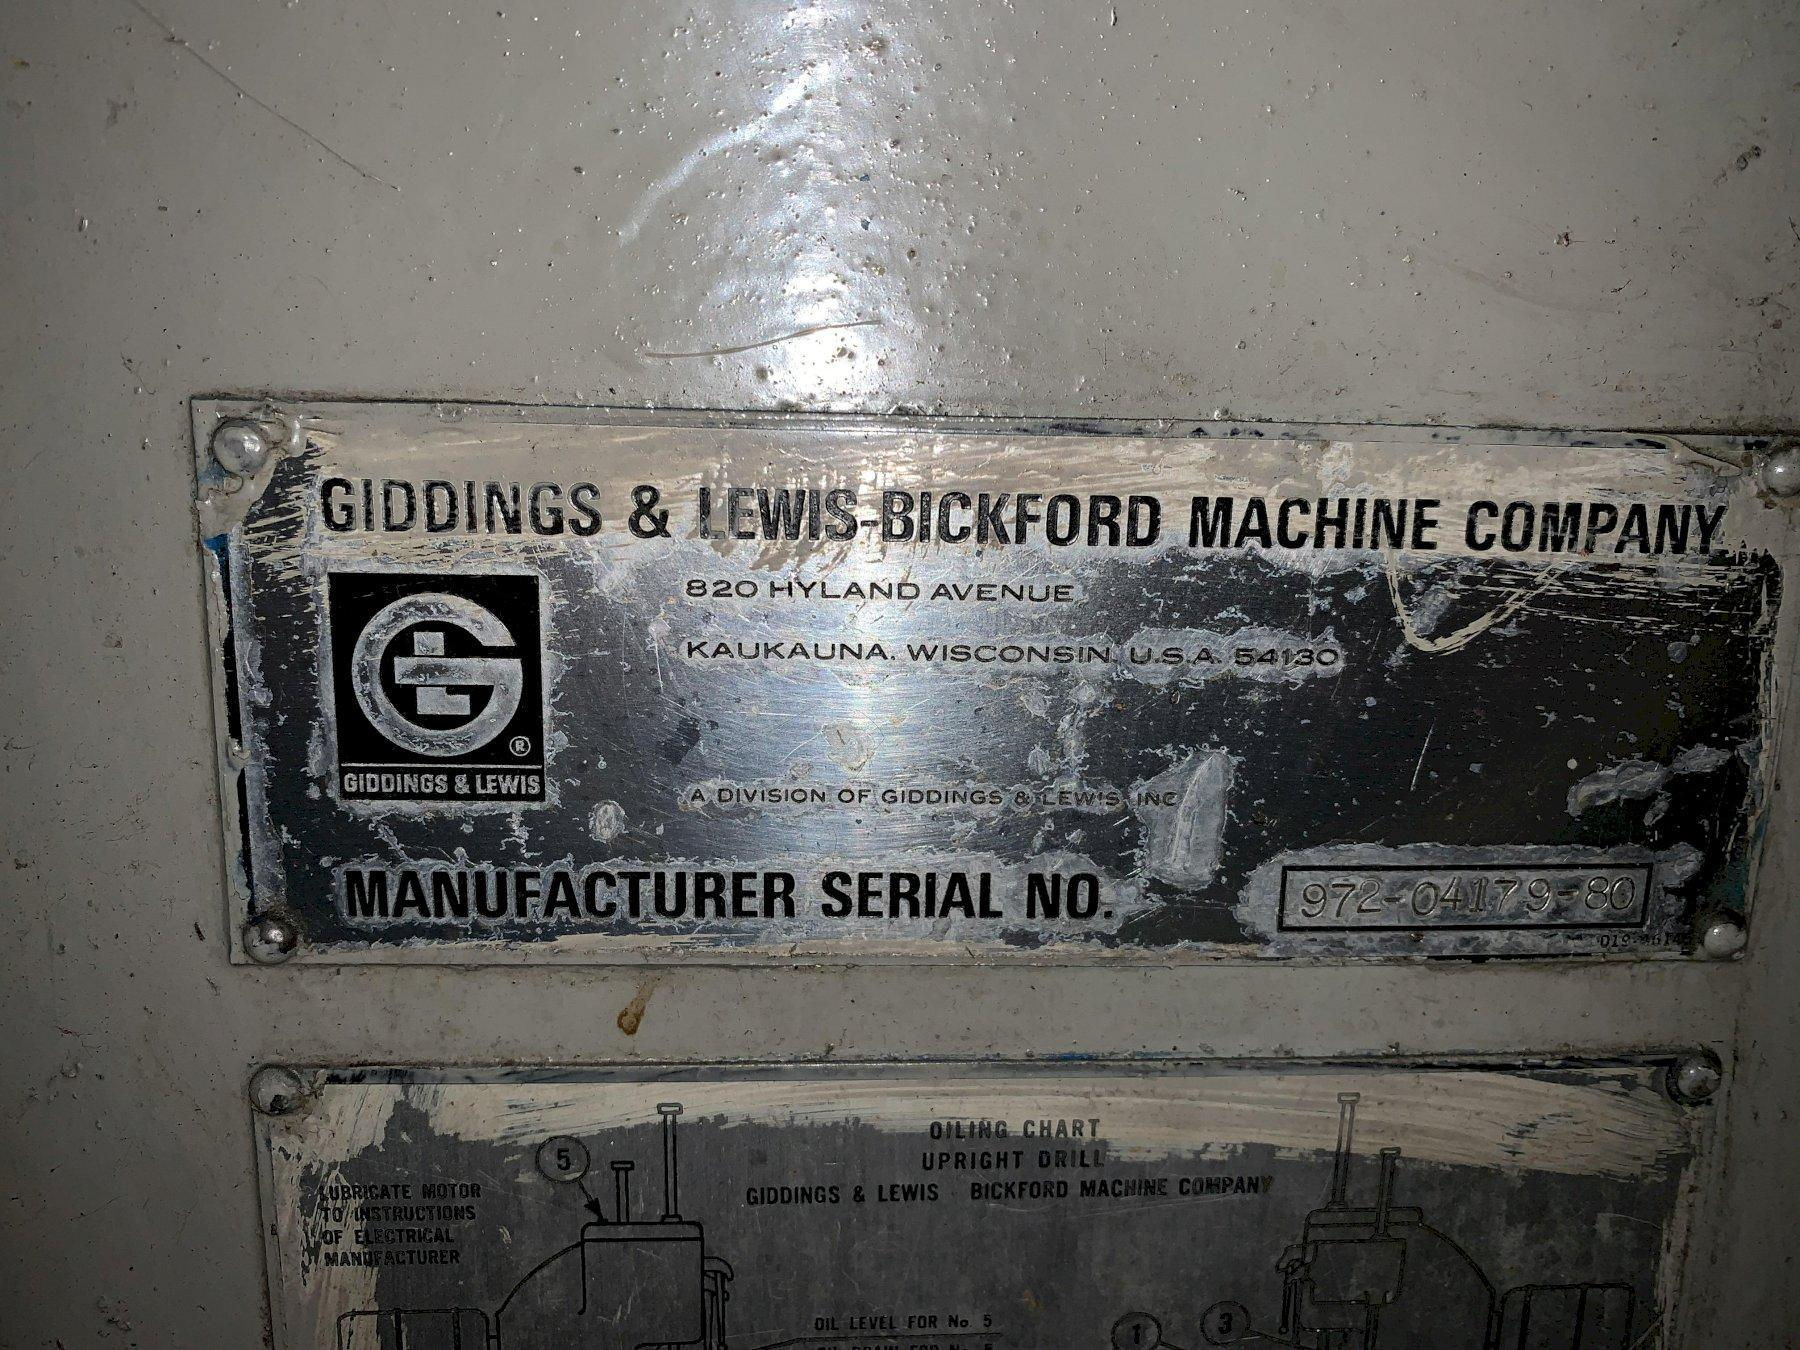 "24"" GIDDINGS & LEWIS BICKFORD MODEL 25A-64346 SINGLE SPINDLE VERTICAL DRILL: STOCK #11435"